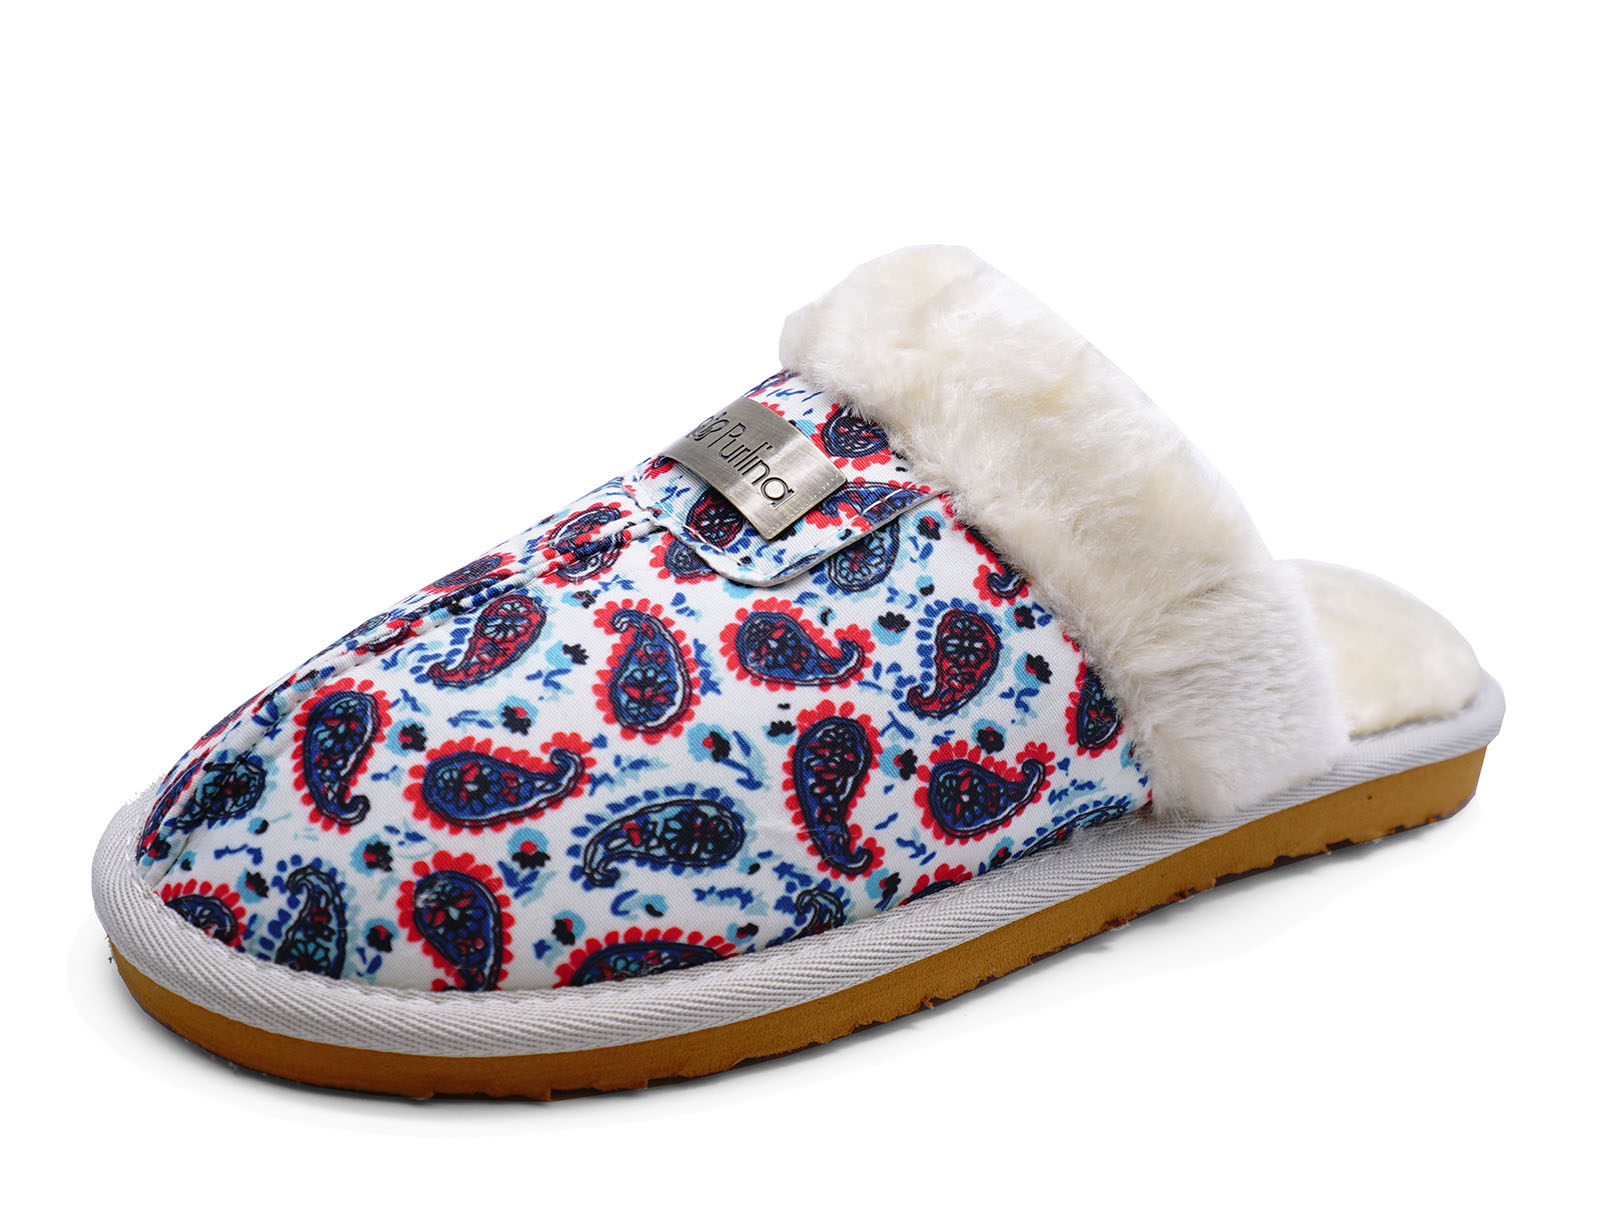 WOMENS DAISY FUR-LINED SLIP-ON SLIPPERS MULES LUXURY GIFT SLIDER INDOOR SHOES 3